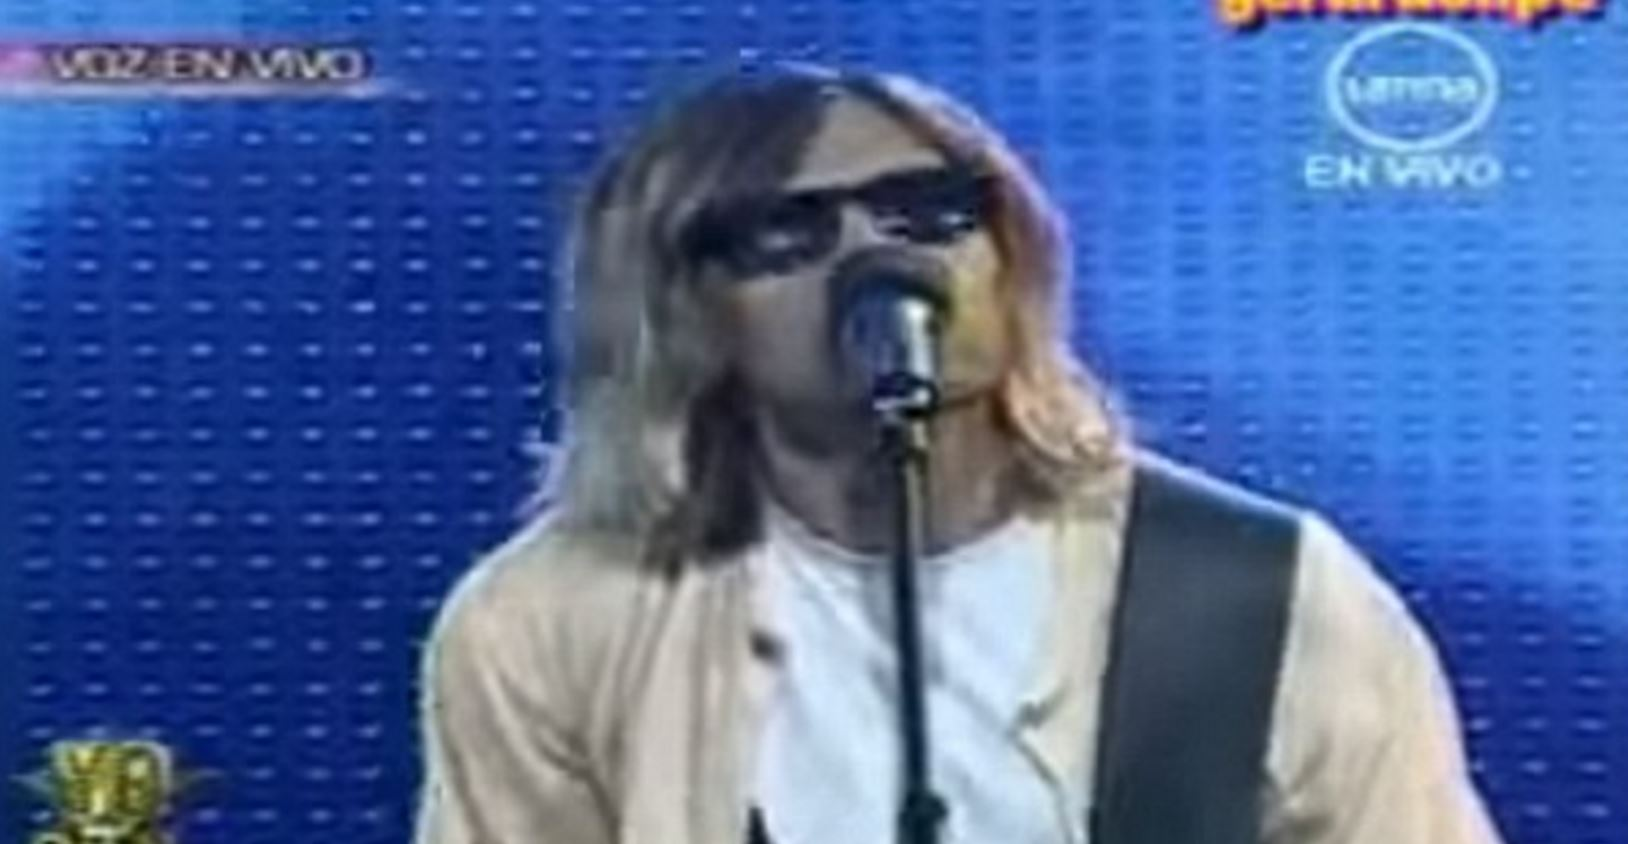 Nirvana respond to conspiracy theory that Kurt Cobain is alive and singing on Peruvian TV